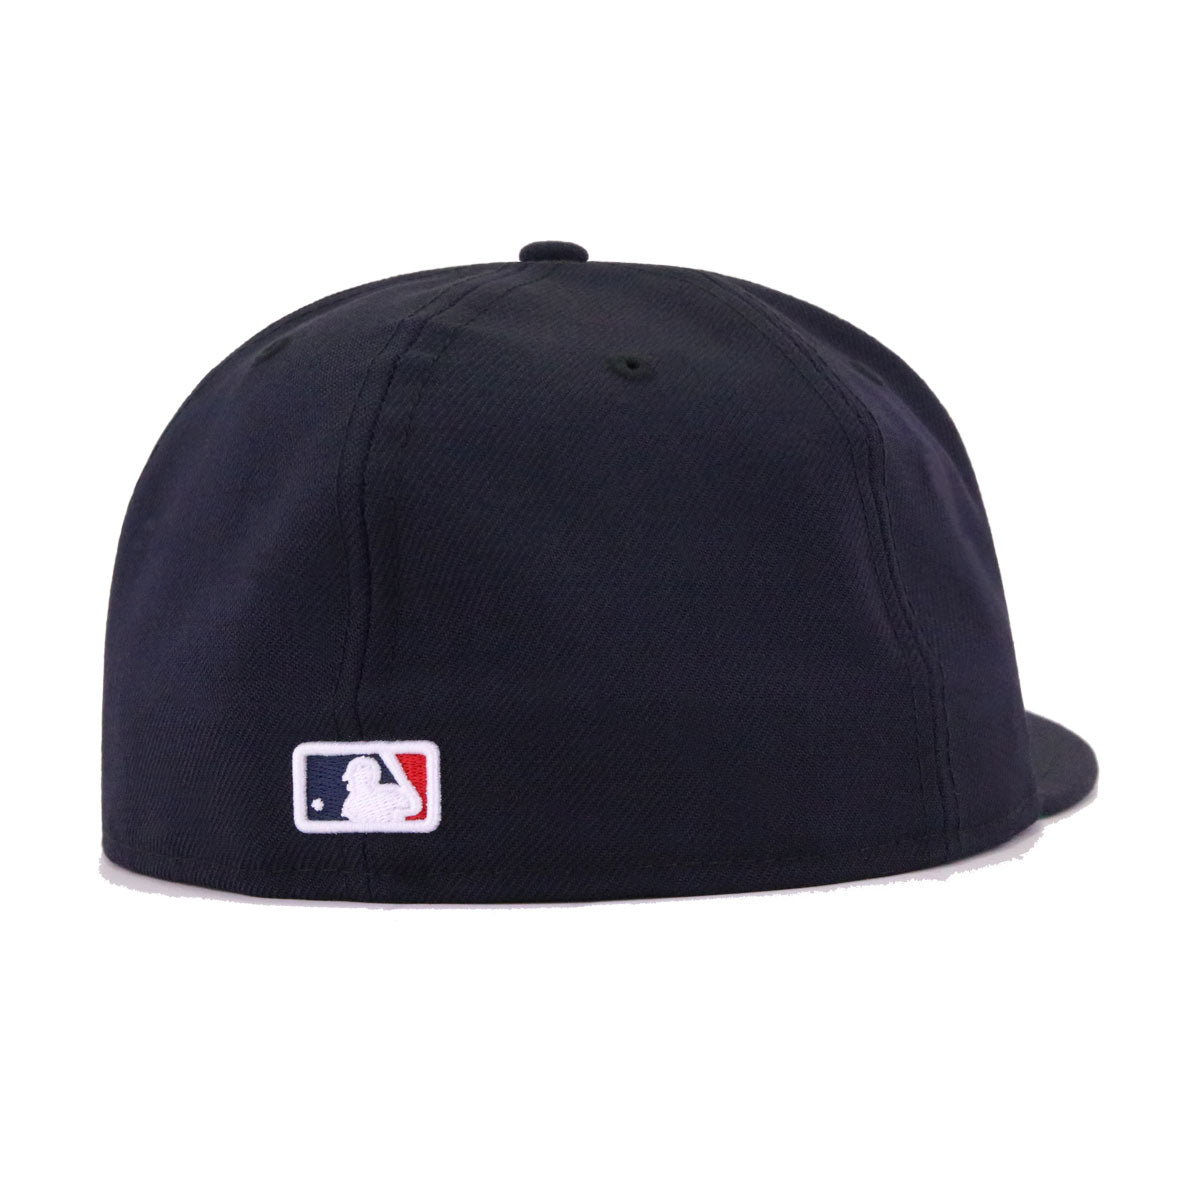 New York Yankees Navy Green Bottom New Era 59Fifty Fitted